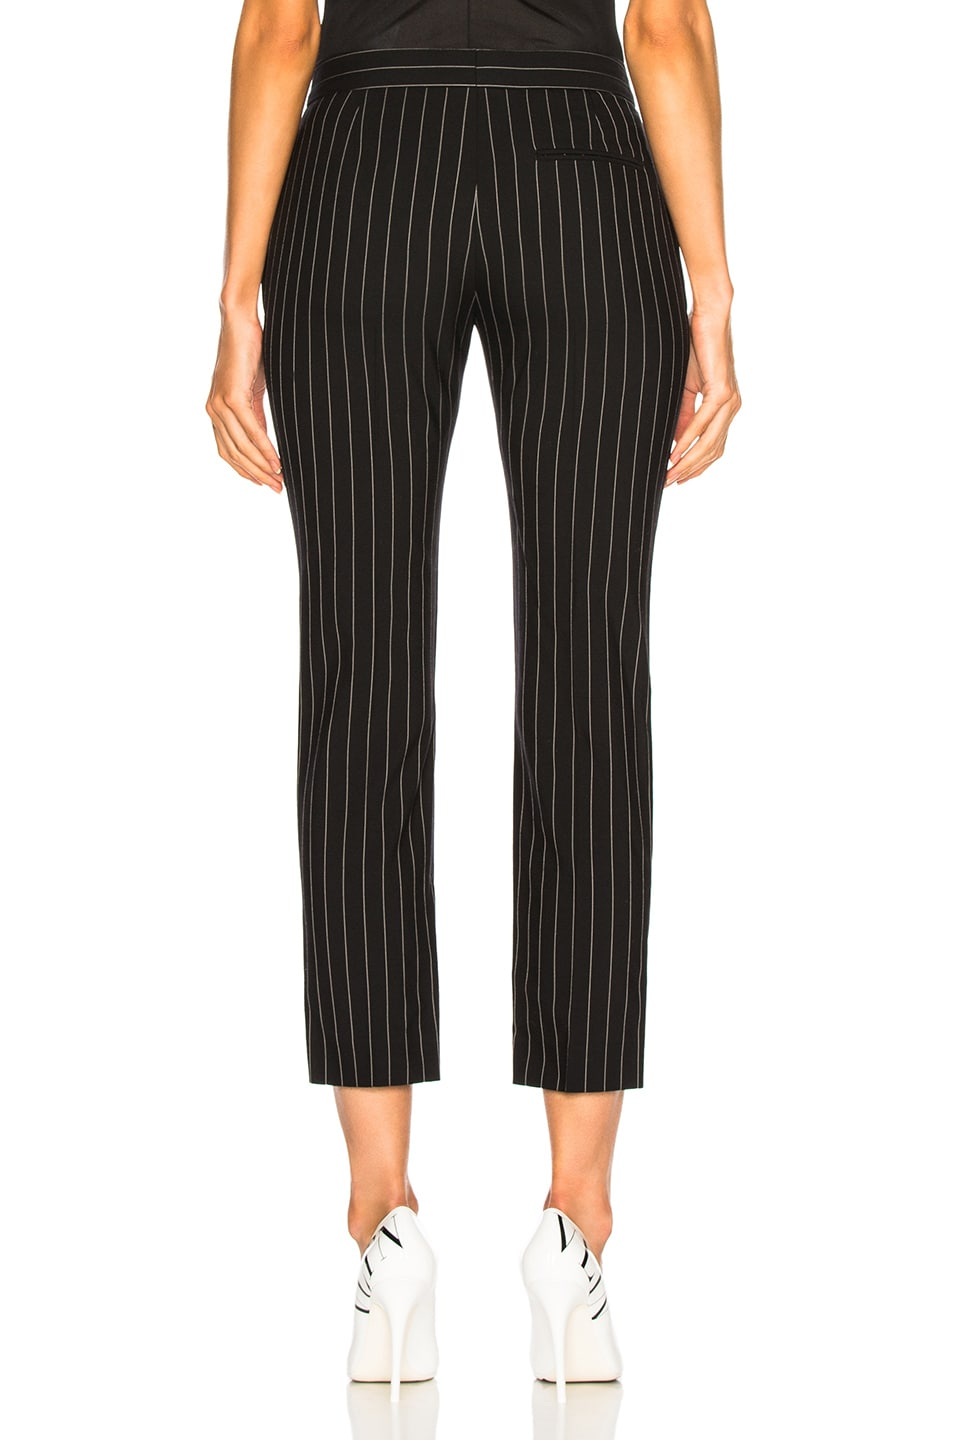 Image 3 of Alexander McQueen Pinstripe Cigarette Trousers in Black & White